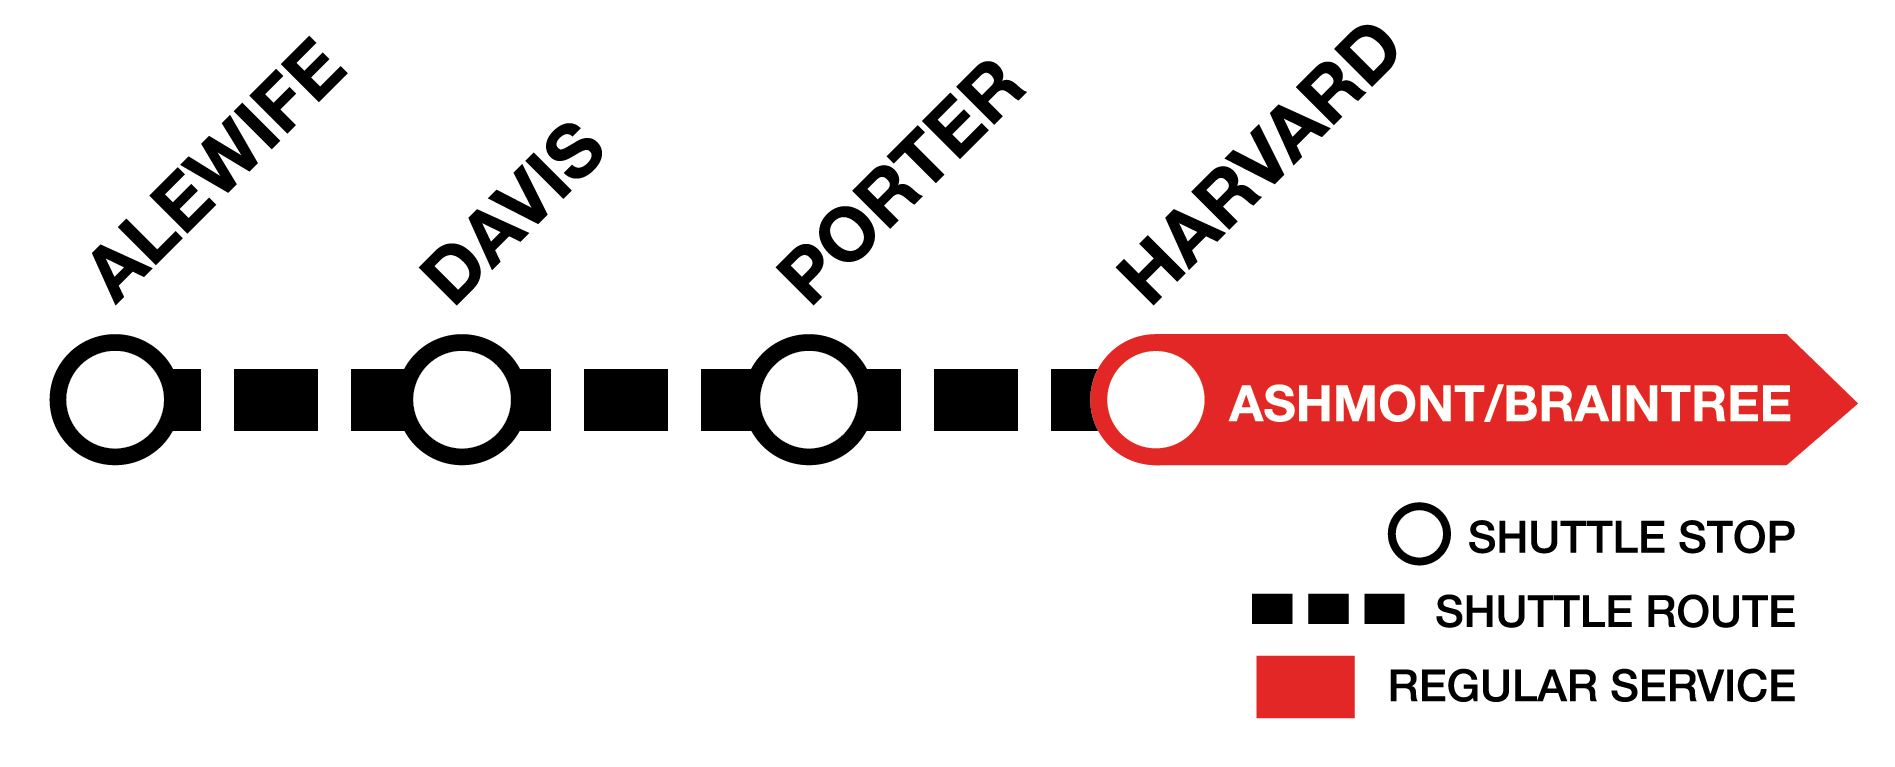 Shuttle service between Alewife and Harvard. Regular Red Line service resumes at Harvard and stops southbound.